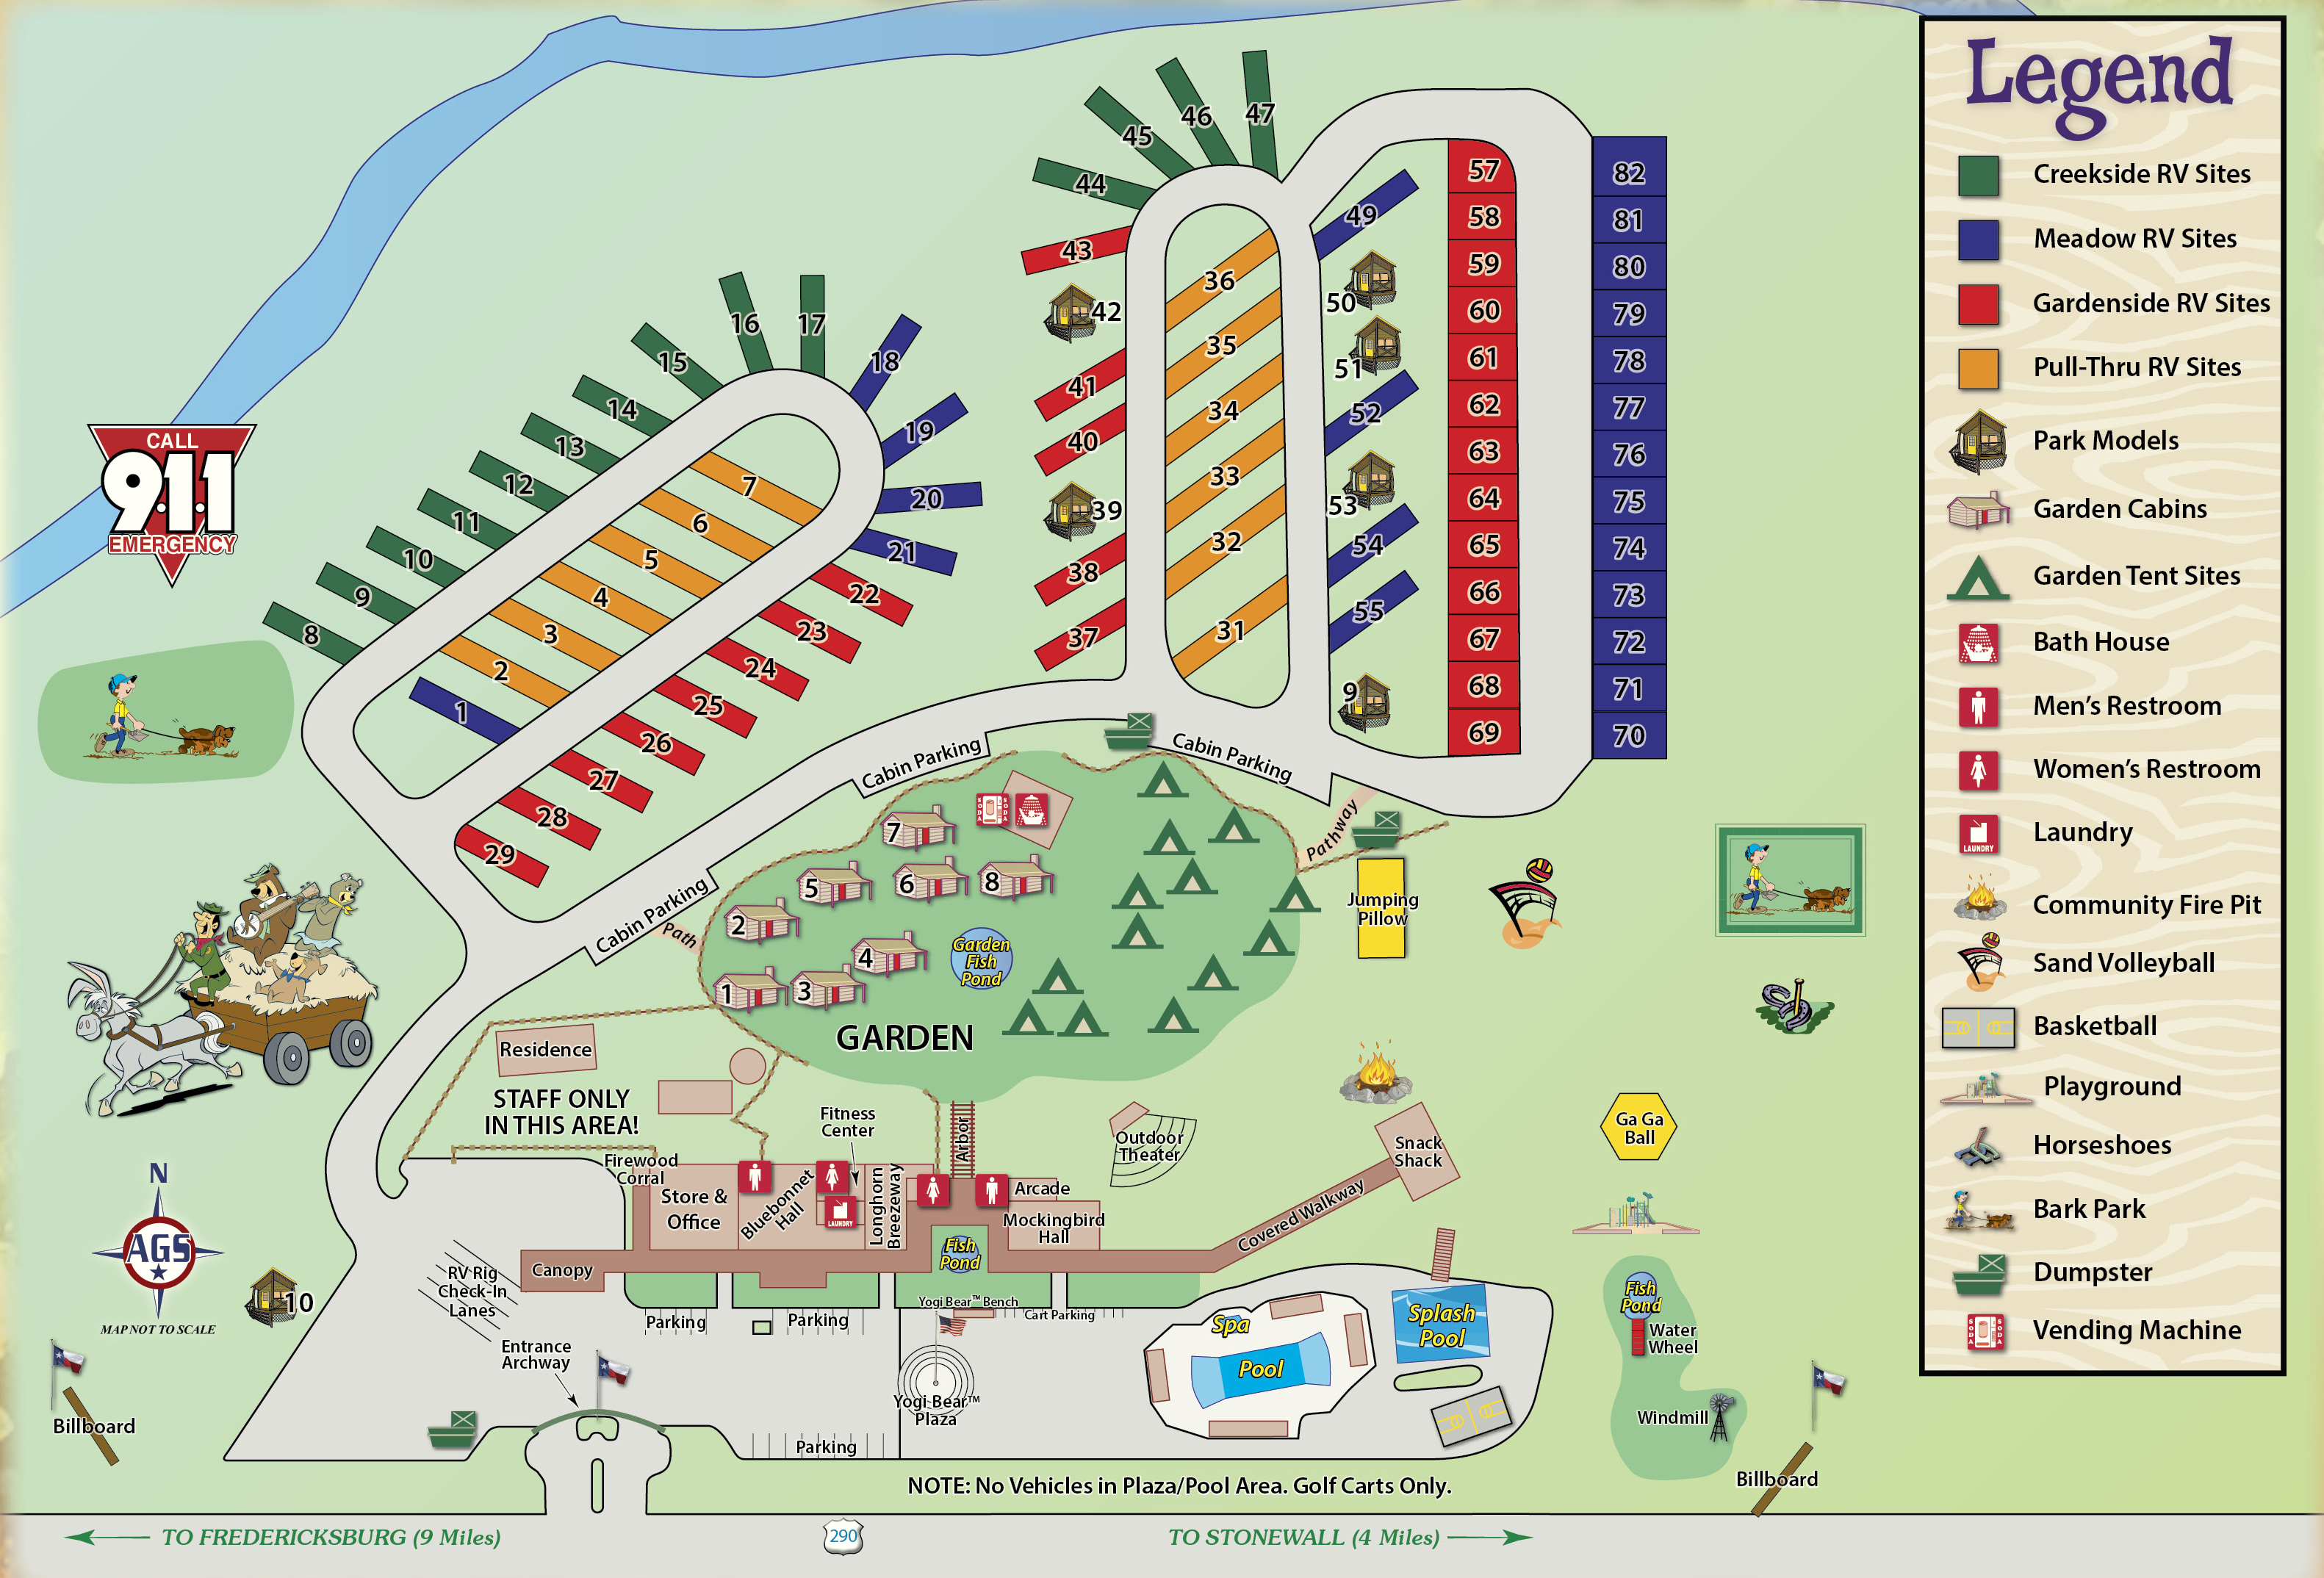 Wine Country Area Camping In Texas | Yogi Bear's Jellystone Park - Texas Campgrounds Map